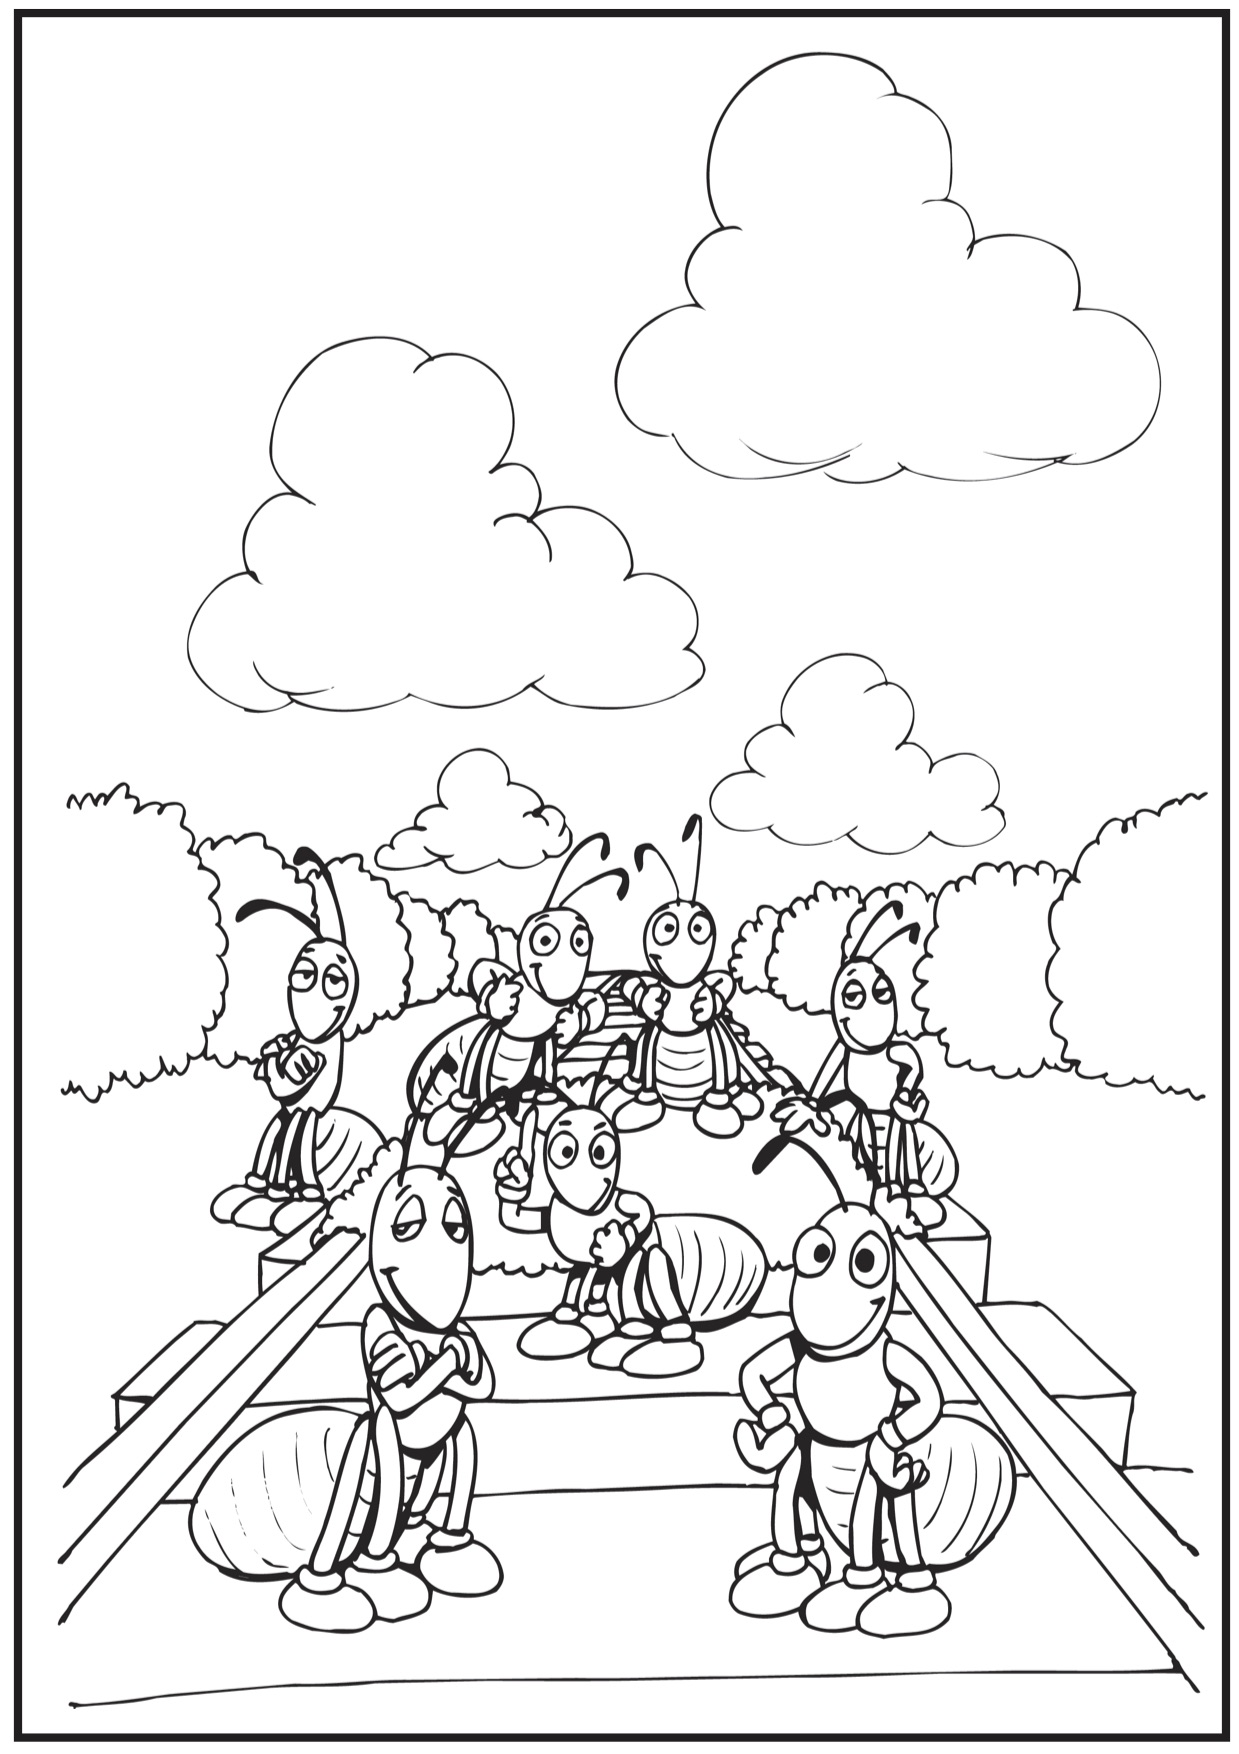 1239x1754 Ant Coloring Pages And Classroom Activities